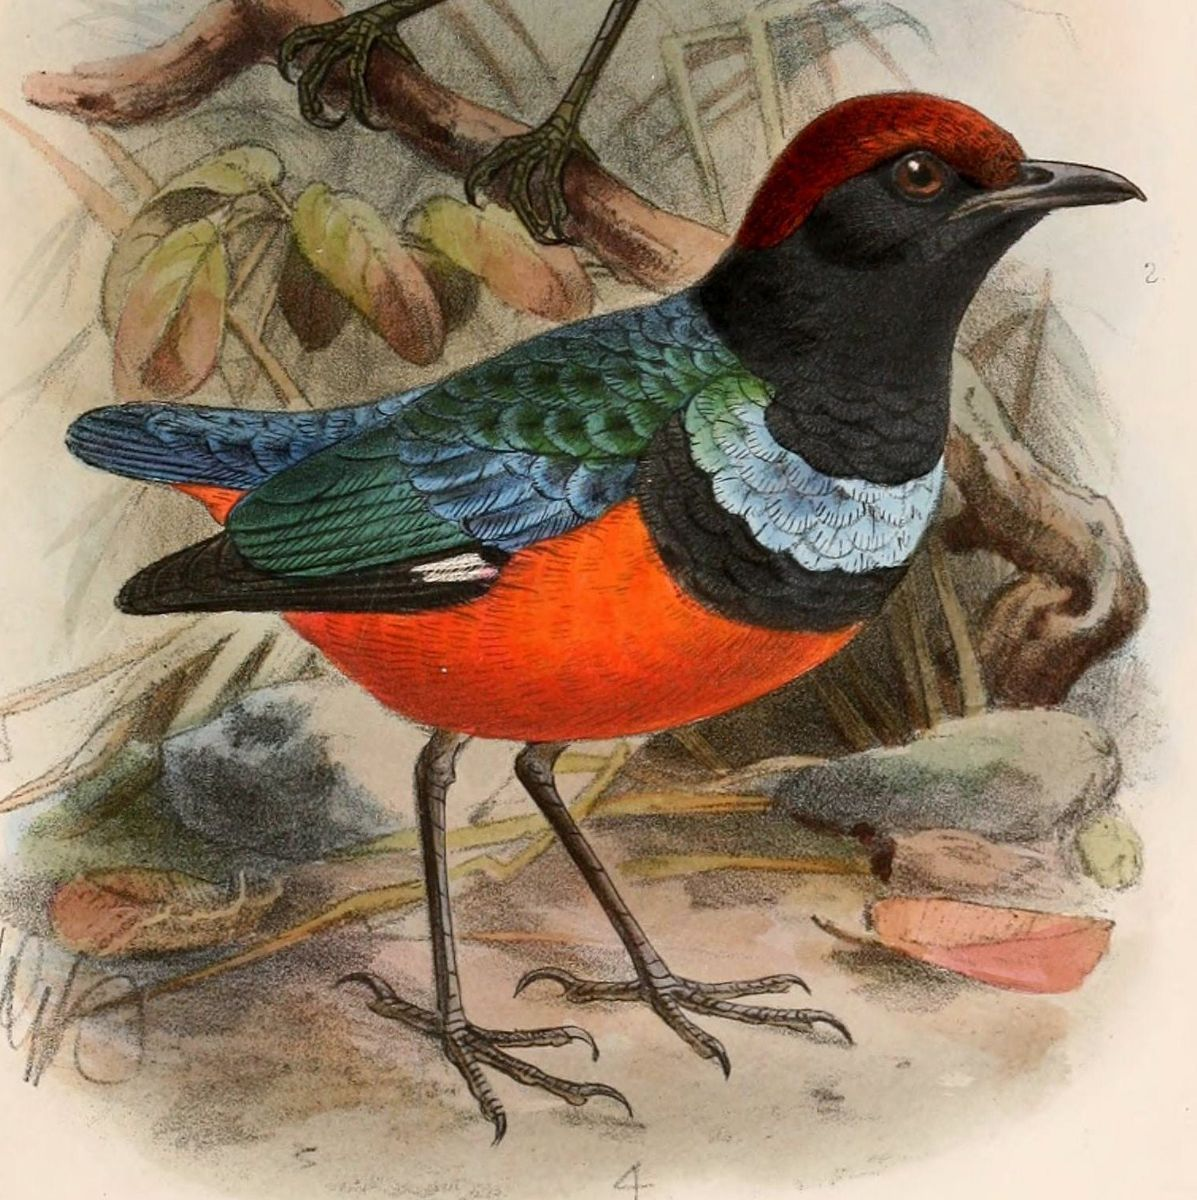 The form of Red-bellied Pitta from Baggai and Sula, Indonesia, is now a full species, Sula Pitta E dohertyi. Illustration: Keulemanns (1899).